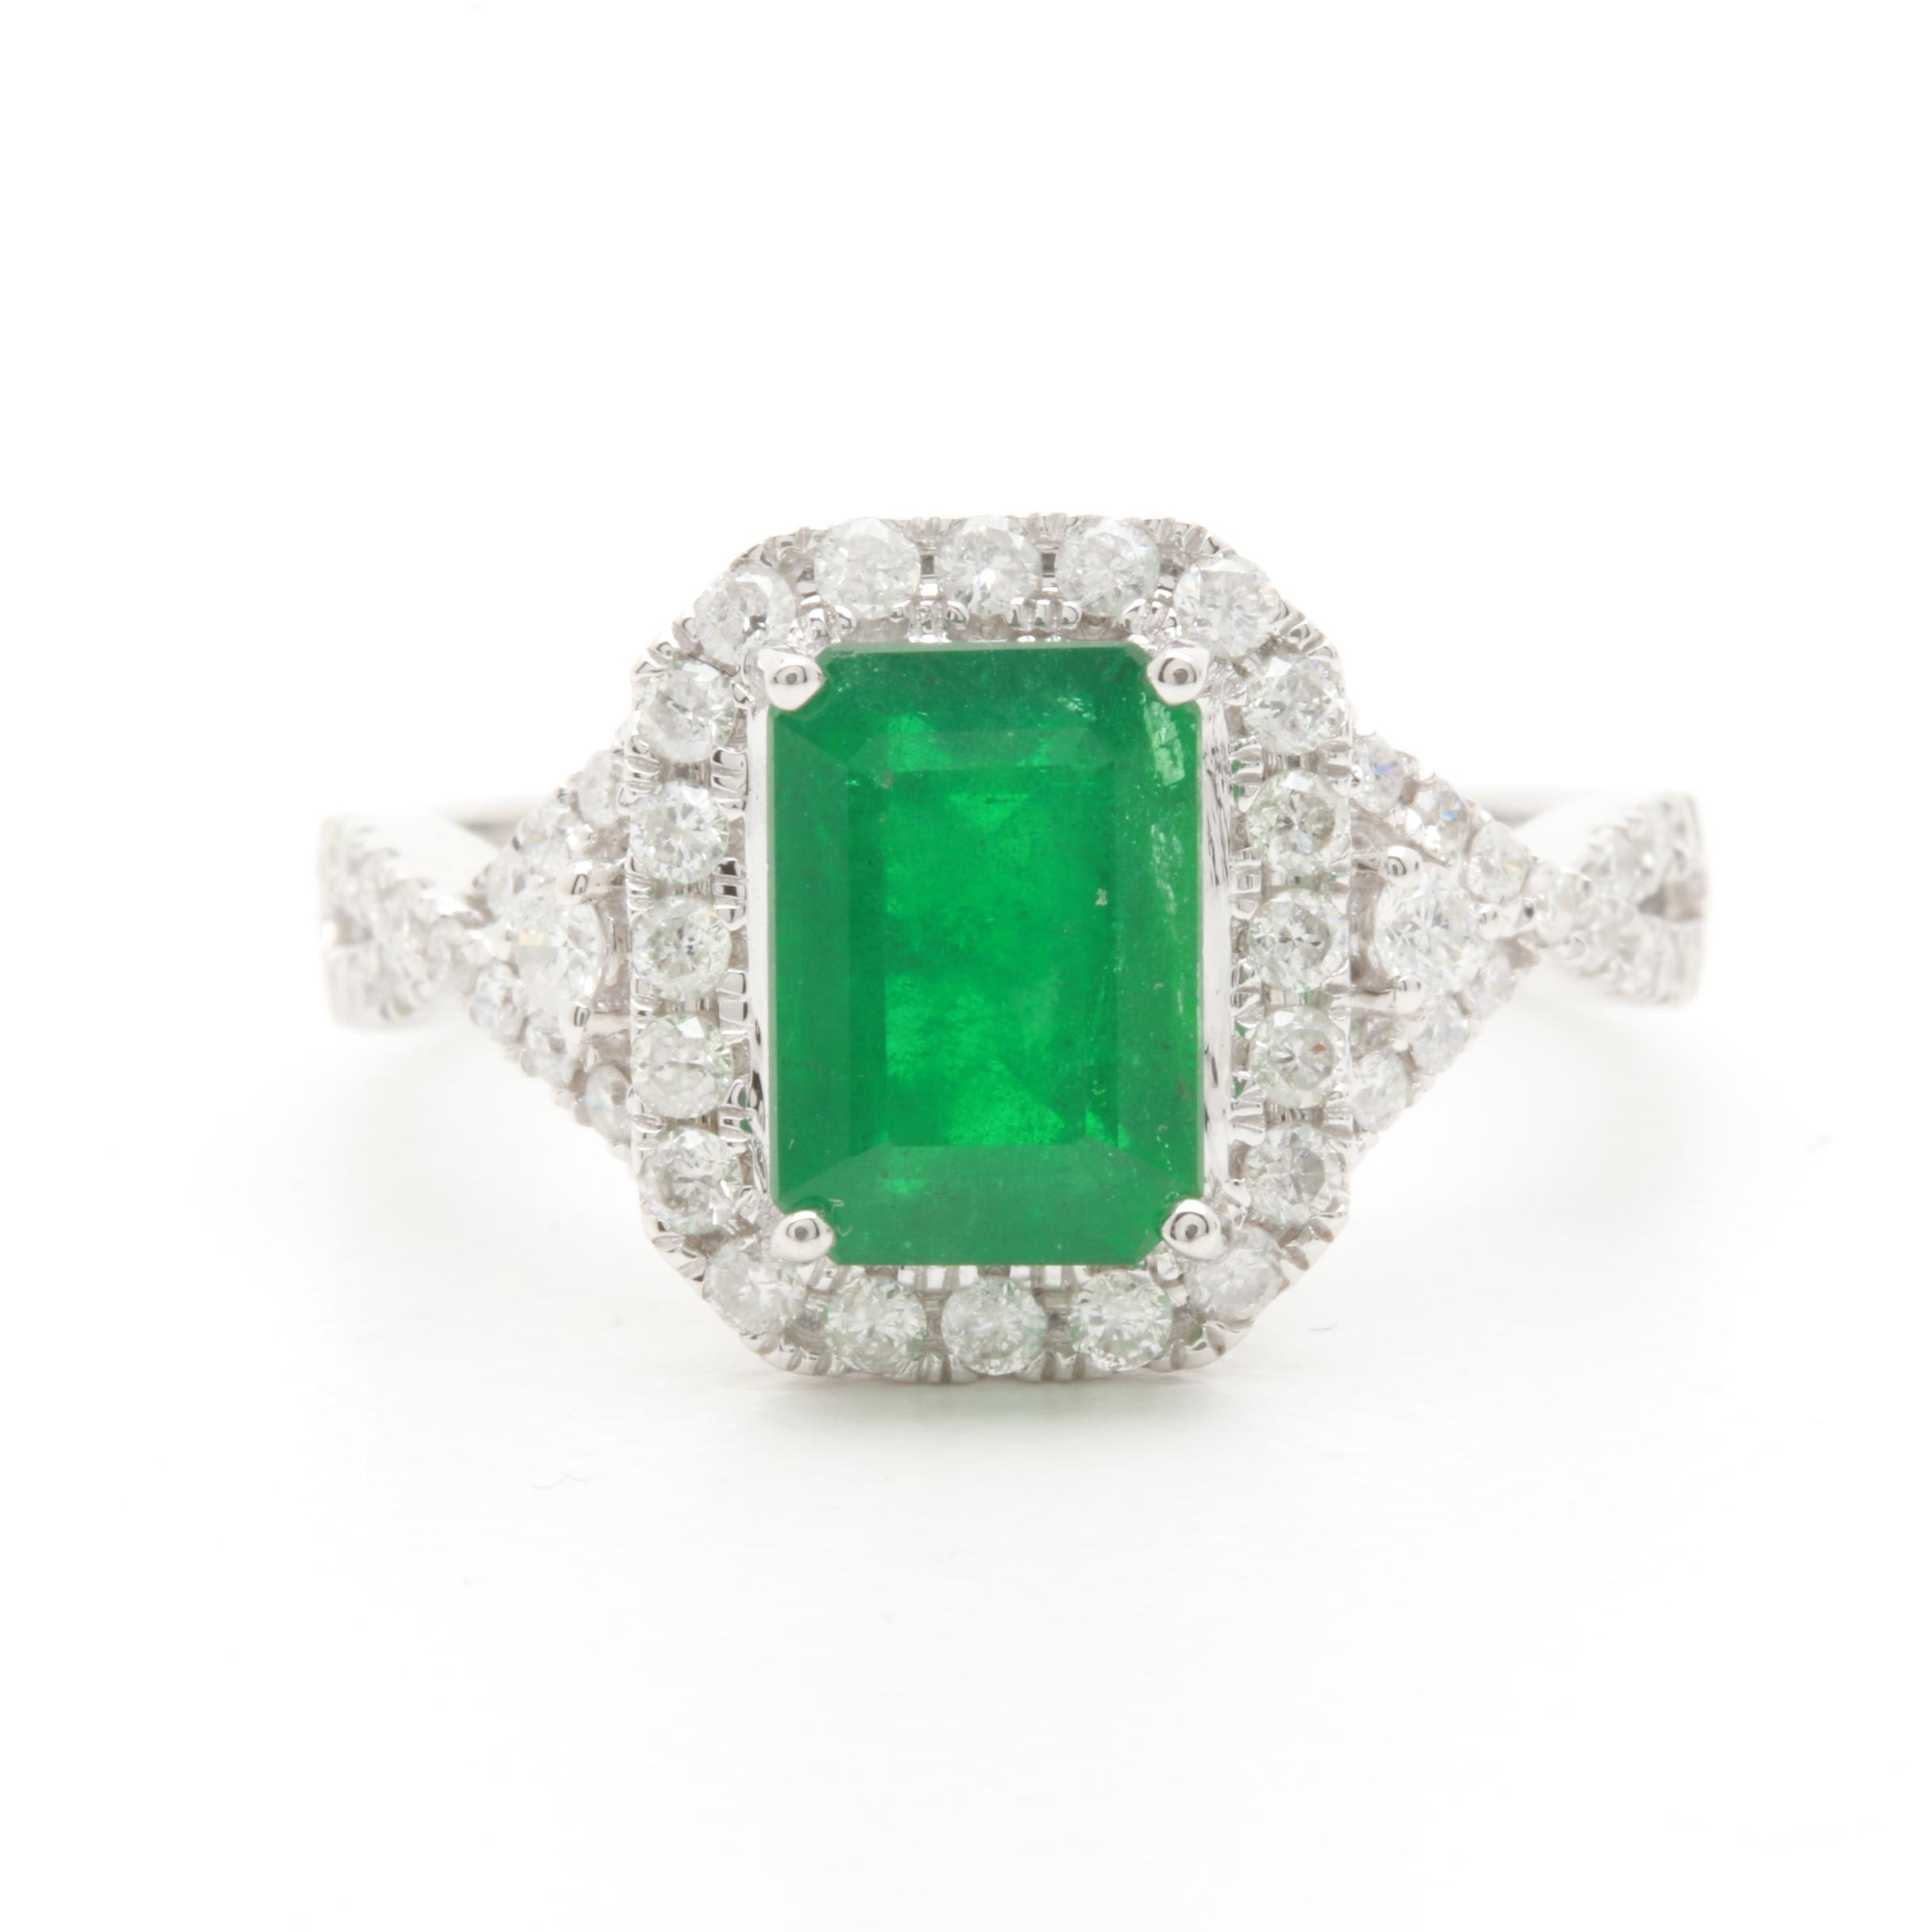 14K White Gold 1.56 CT Emerald and Diamond Ring